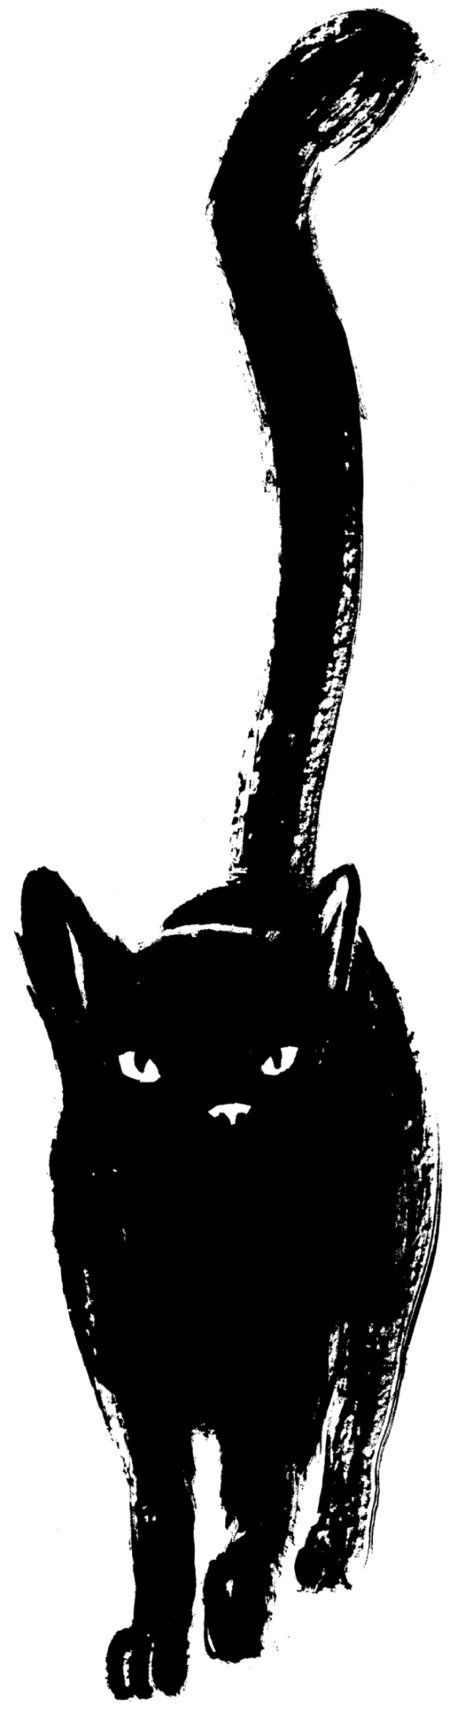 This is apparently one of the most popular drawings I've ever created, if the rate of shares and pins is any indicator. Too bad most are uncredited...    This is my cat Chase; she left us in 2010 at the age of 16. Rest well, lady.